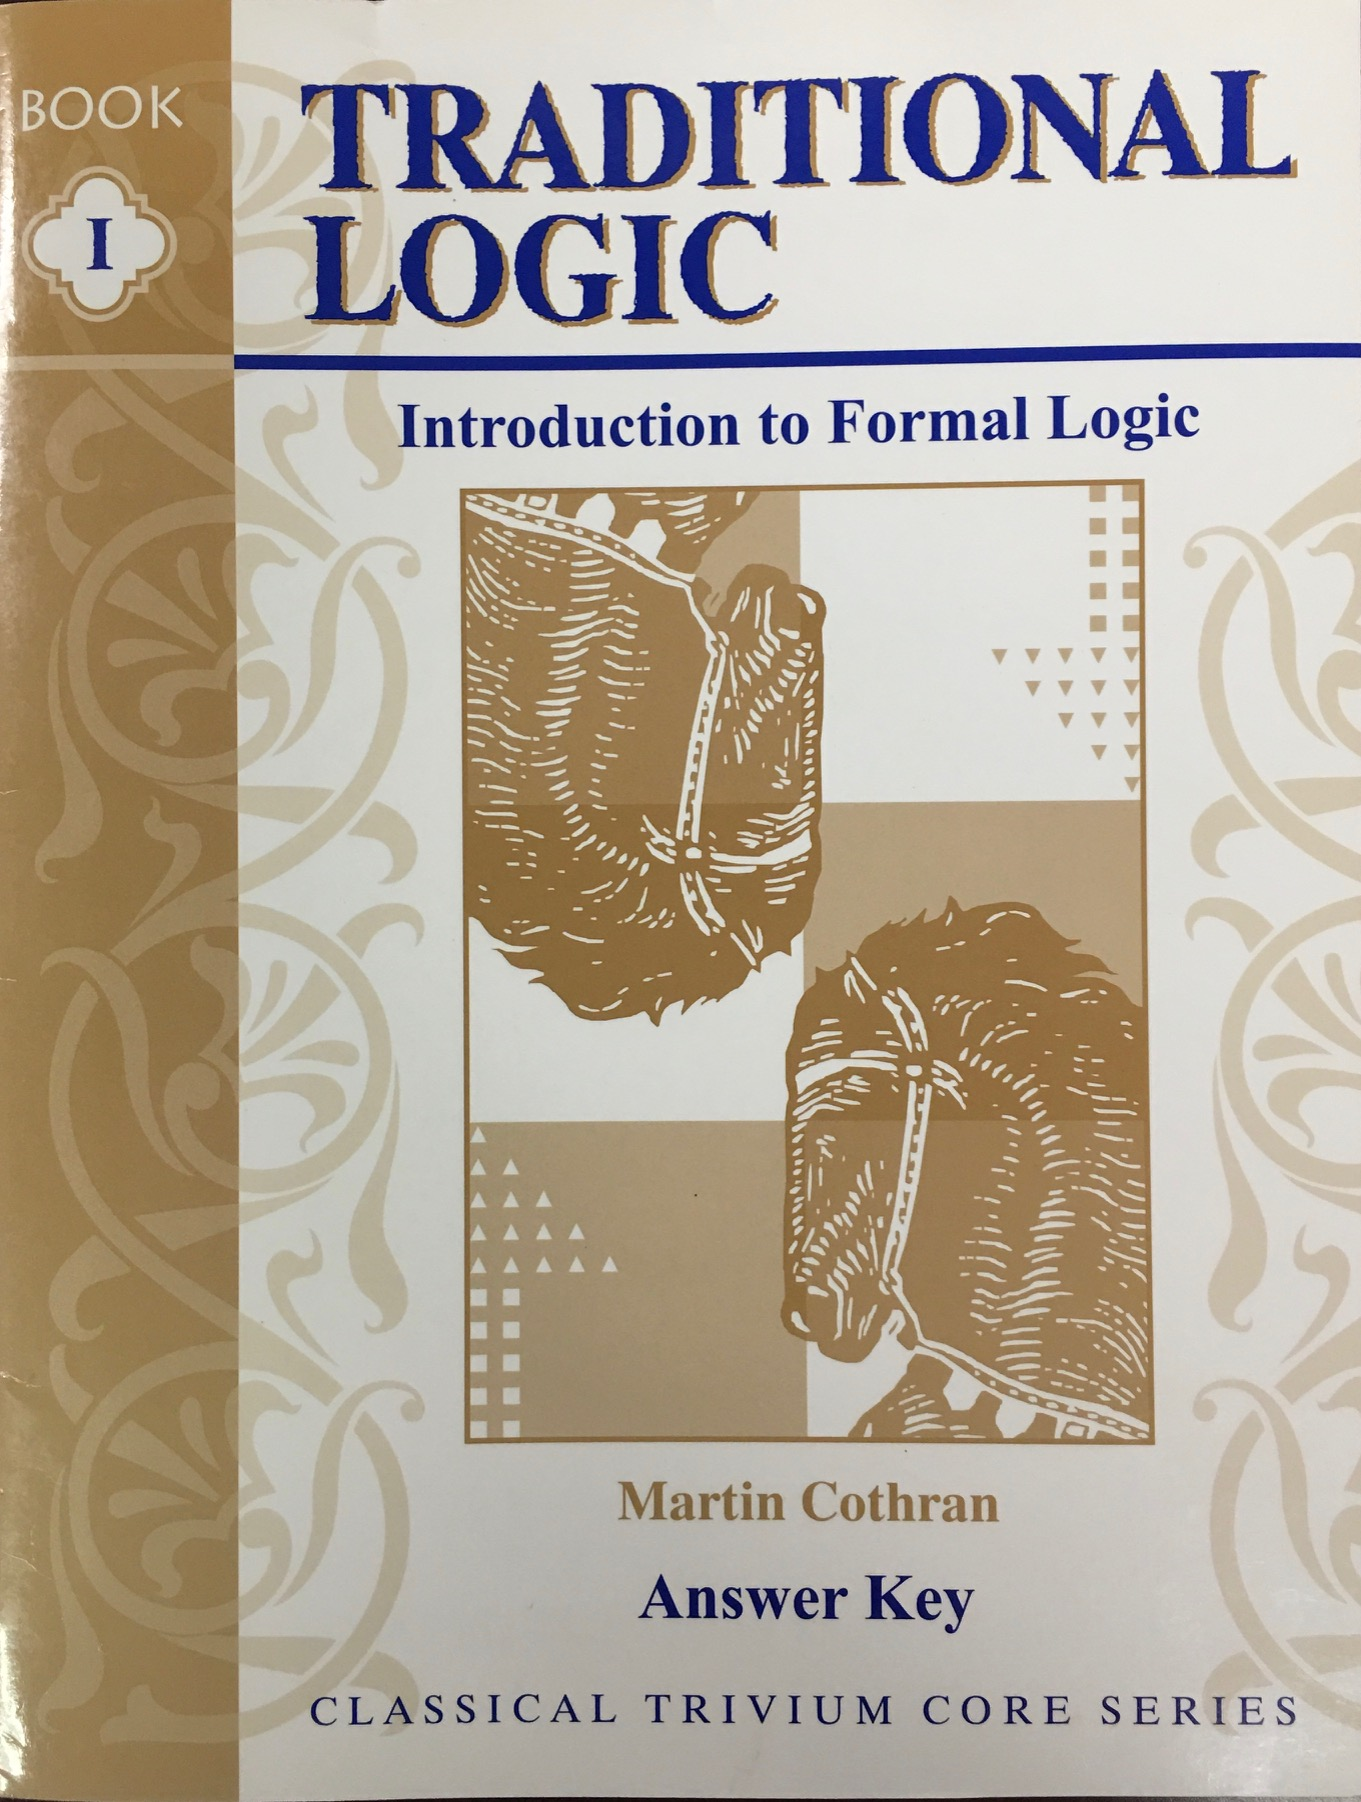 Image for Traditional Logic: An Introduction to Formal Logic - Answer Key, Book I (Classical Trivium Core Series)